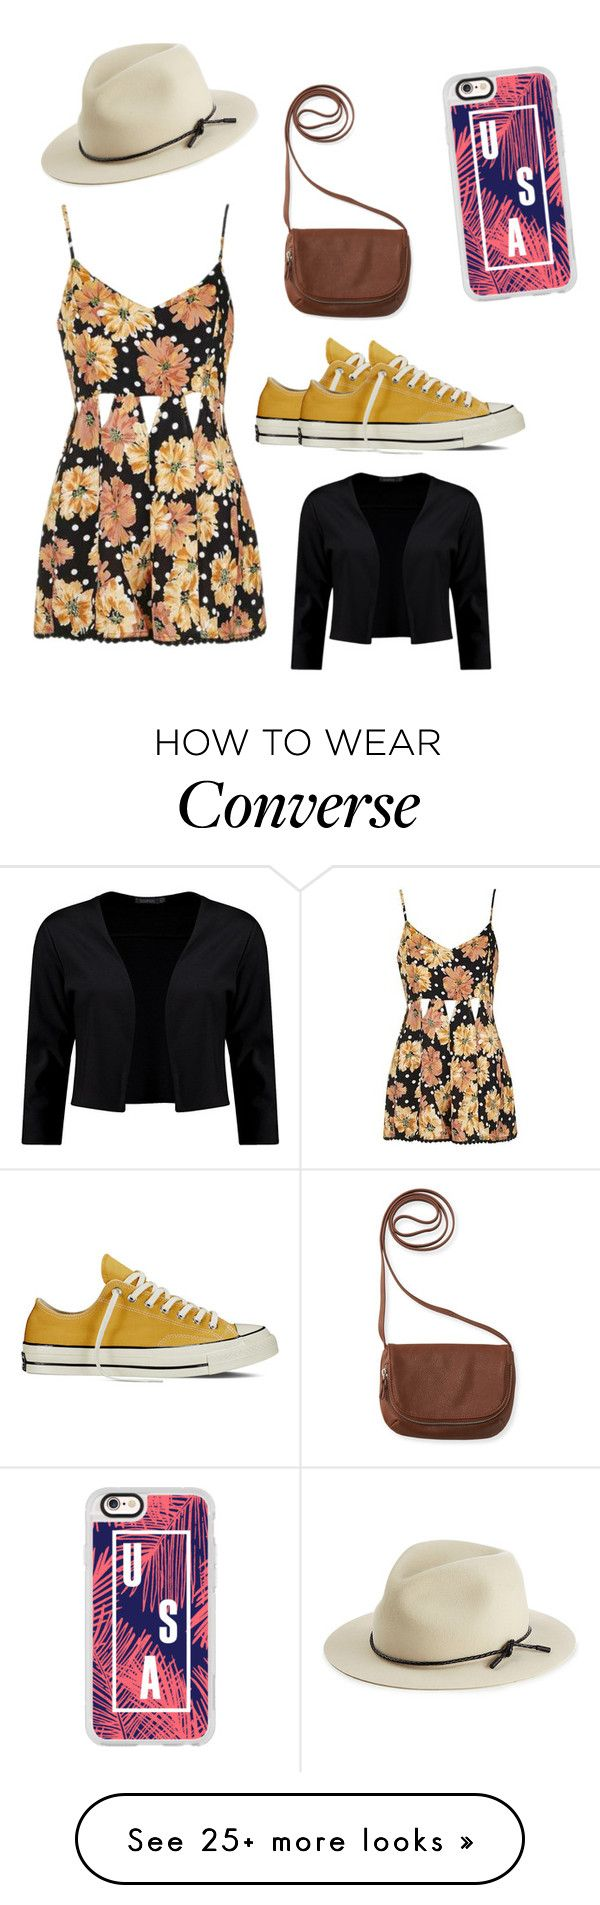 """Country Style"" by angel-wwe-forever on Polyvore featuring rag & bone, Topshop, Aéropostale, Converse, Boohoo, Casetify and country"